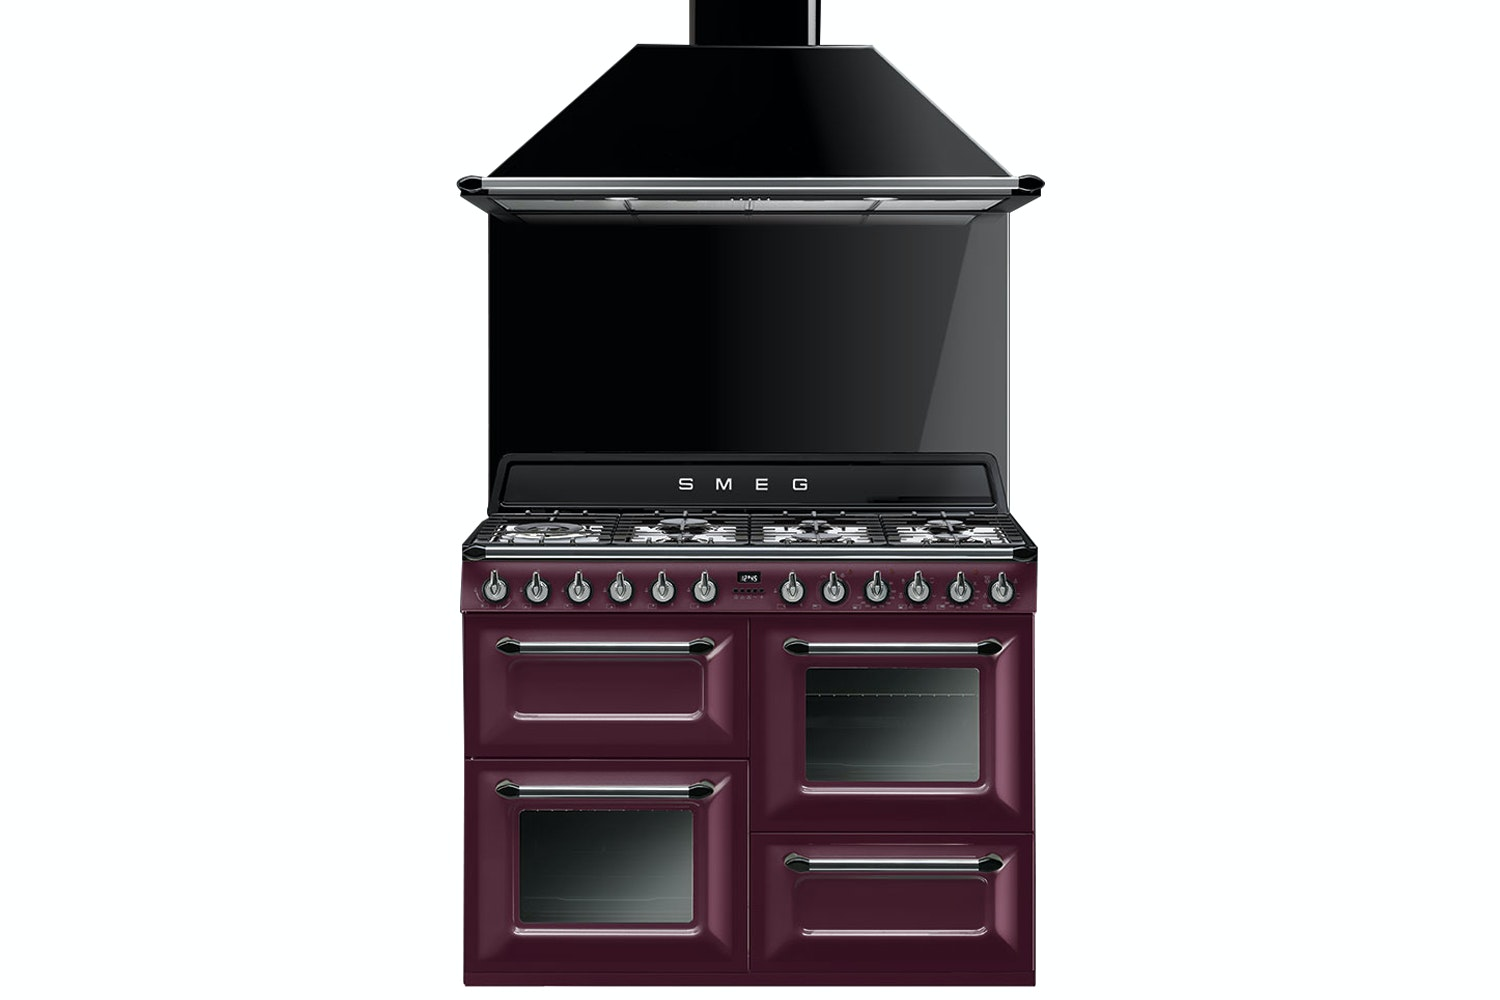 Smeg 110cm Dual Fuel Range Cooker | TR4110RW1 | Red Wine